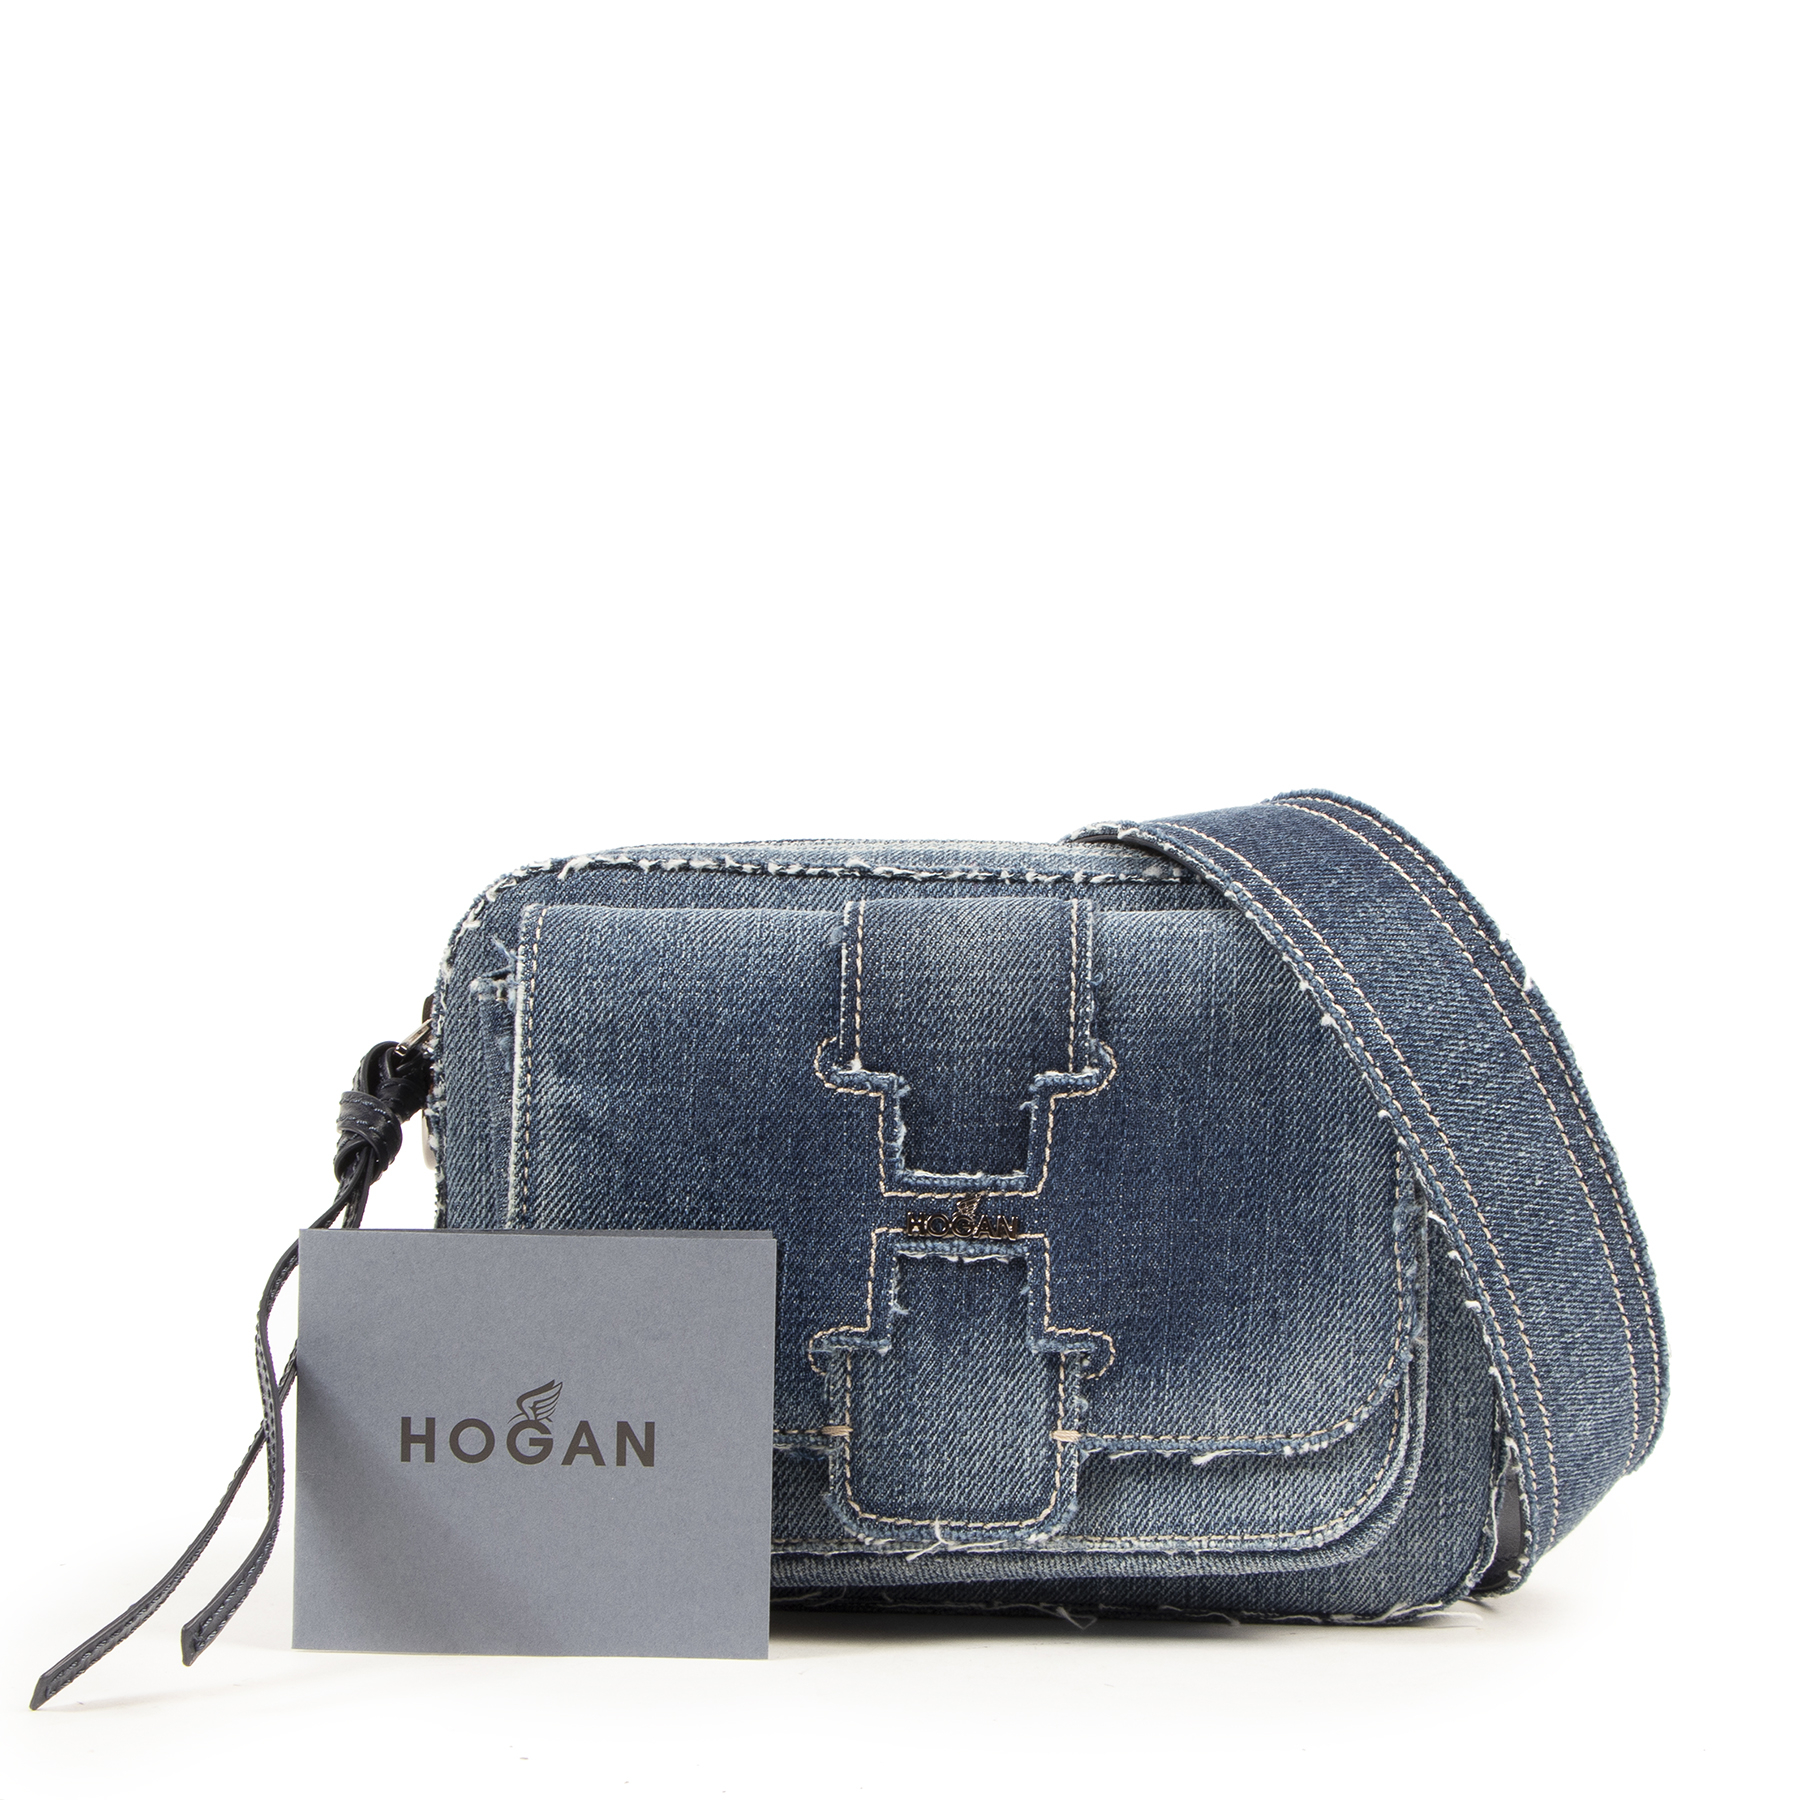 Authentic secondhand Hogan Blue Denim Crossbody Bag designer bags fashion luxury vintage webshop safe secureonline shopping